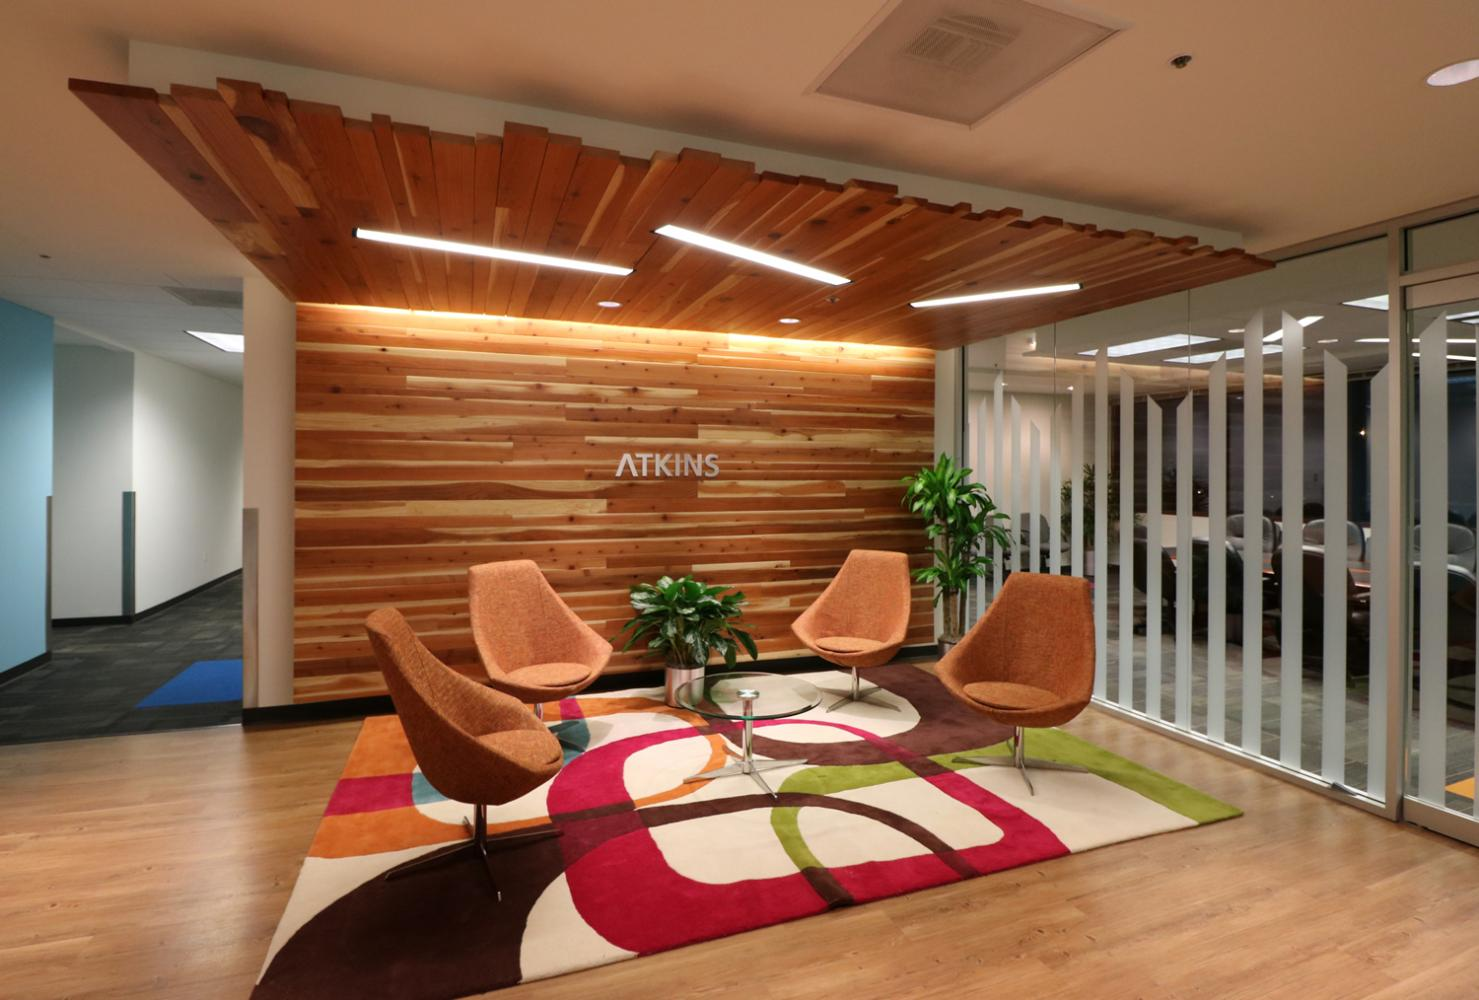 Atkins North America Lobby Seating and Conference Room Denver Colorado